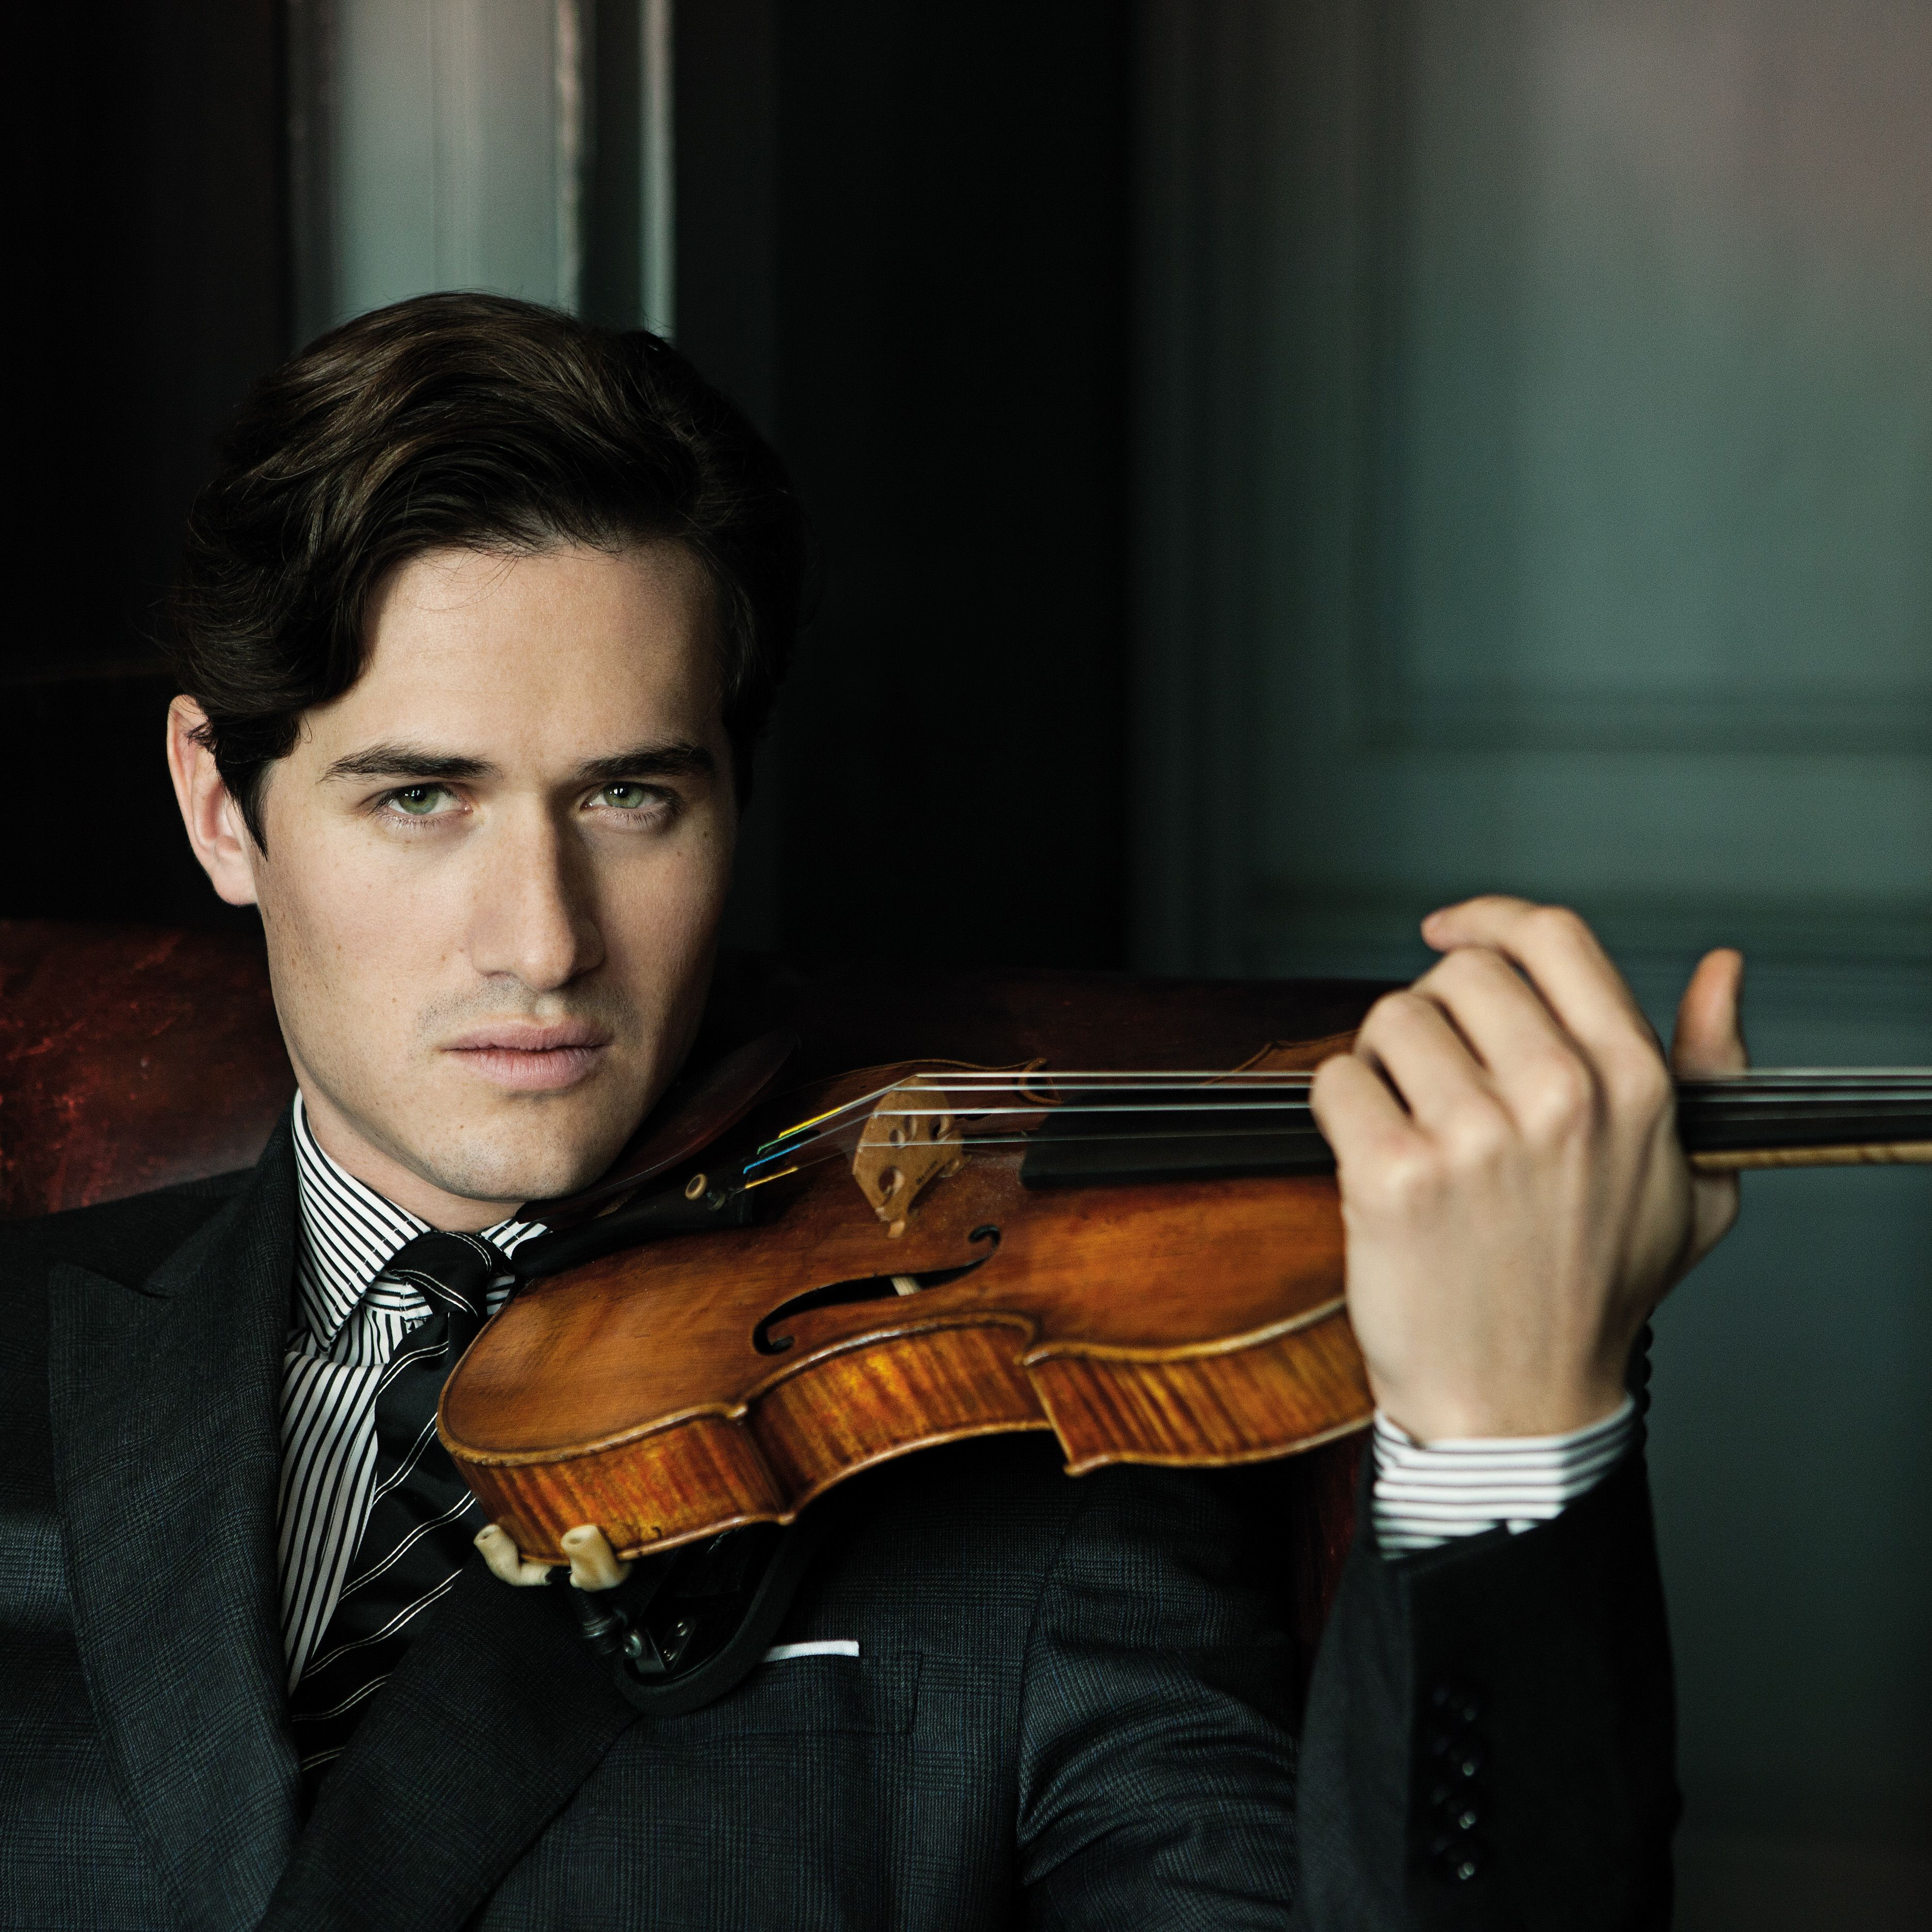 """Charlie Siem apologizes profusely for his delay in calling&#x3B; he has only just arrived in Scot- land after a missed flight. Is the British violinist there for a concert? """"I'm actually going shooting with my sister's husband,"""" says the Eton-educated 28-year-old, his accent sleekly posh. """"It sounds quite gentlemanly, doesn't it? Until I get out on the fields with my gun and it becomes a complete mess!"""" Siem is much more adept with his violin. Known for his graceful stage presence and romantic sound, he recently toured Europe playing selections from <em>U</em><em>n</em><em>de</em><em>r</em><em> </em><em>th</em><em>e</em><em> </em><em>Sta</em><em>r</em><em>s</em>, his album of orchestral encores. """"With something like the violin, you've got to figure out a unique way of playing that suits you,"""" he says. """"It's such a physical thing, and you have to really listen. Your greatest asset as a musician is your ear."""" Siem happens to have other assets as well. He has modeled for Dunhill and for an upcoming Hugo Boss campaign, and he appeared in Karl Lagerfeld's book <em>Th</em><em>e</em><em> </em><em>Littl</em><em>e</em><em> </em><em>Bla</em><em>c</em><em>k</em><em> </em><em>J</em><em>a</em><em>c</em><em>k</em><em>e</em><em>t</em><em> </em>at the Kaiser's own request—so, yes, he looks quite nice onstage in his trademark fitted suit. As for life offstage, """"I guess, for me, I haven't met the right person yet,"""" he says. """"I always say that if I did, I'd change my life."""" Music to our ears. <strong>Rebe</strong><strong>c</strong><strong>c</strong><strong>a</strong><strong> </strong><strong>Milzoff</strong>"""